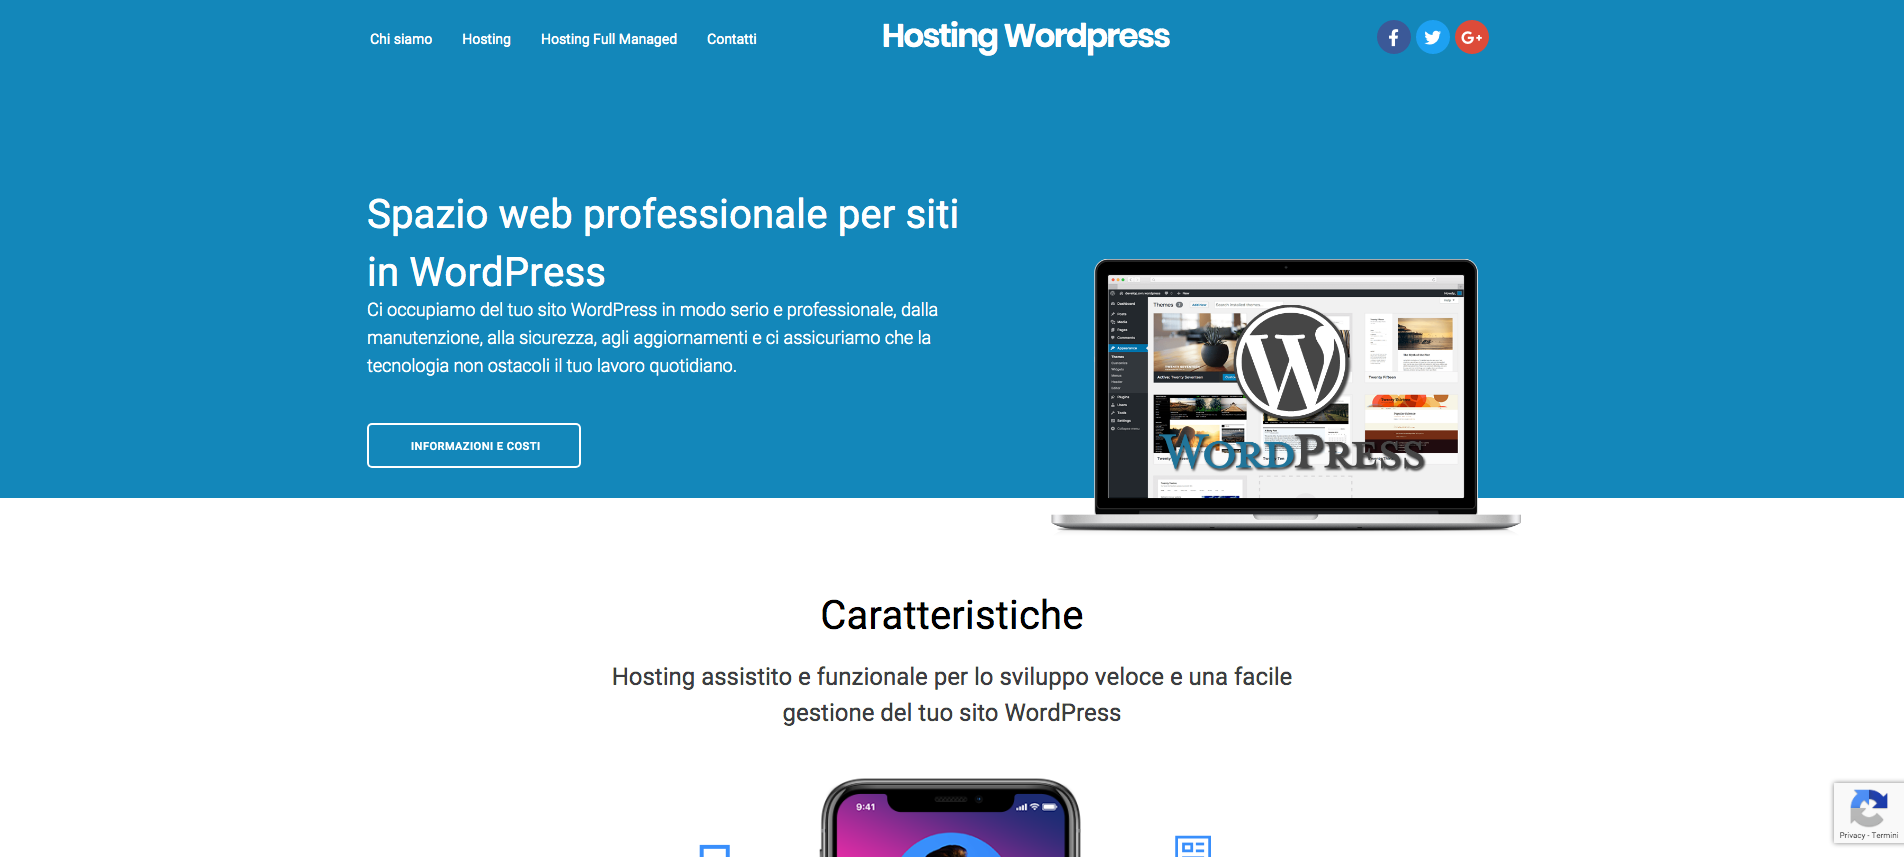 Hostingwordpress.biz